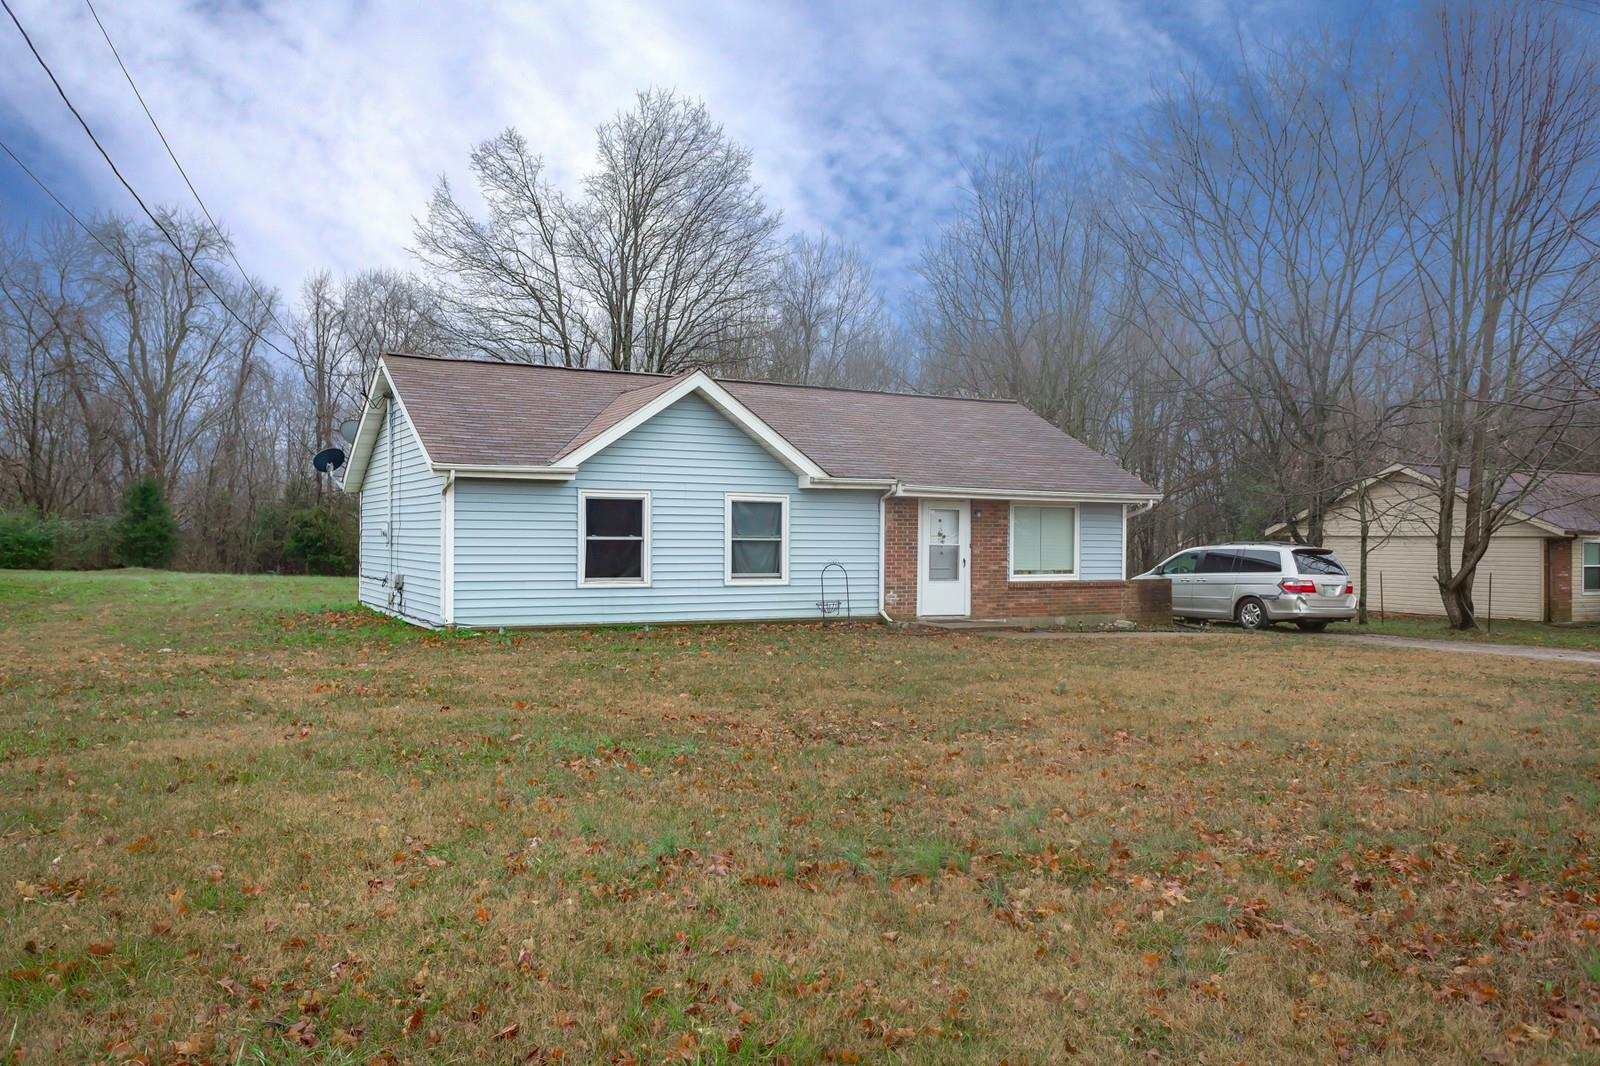 224 State Line Rd, Fort Campbell, Tennessee